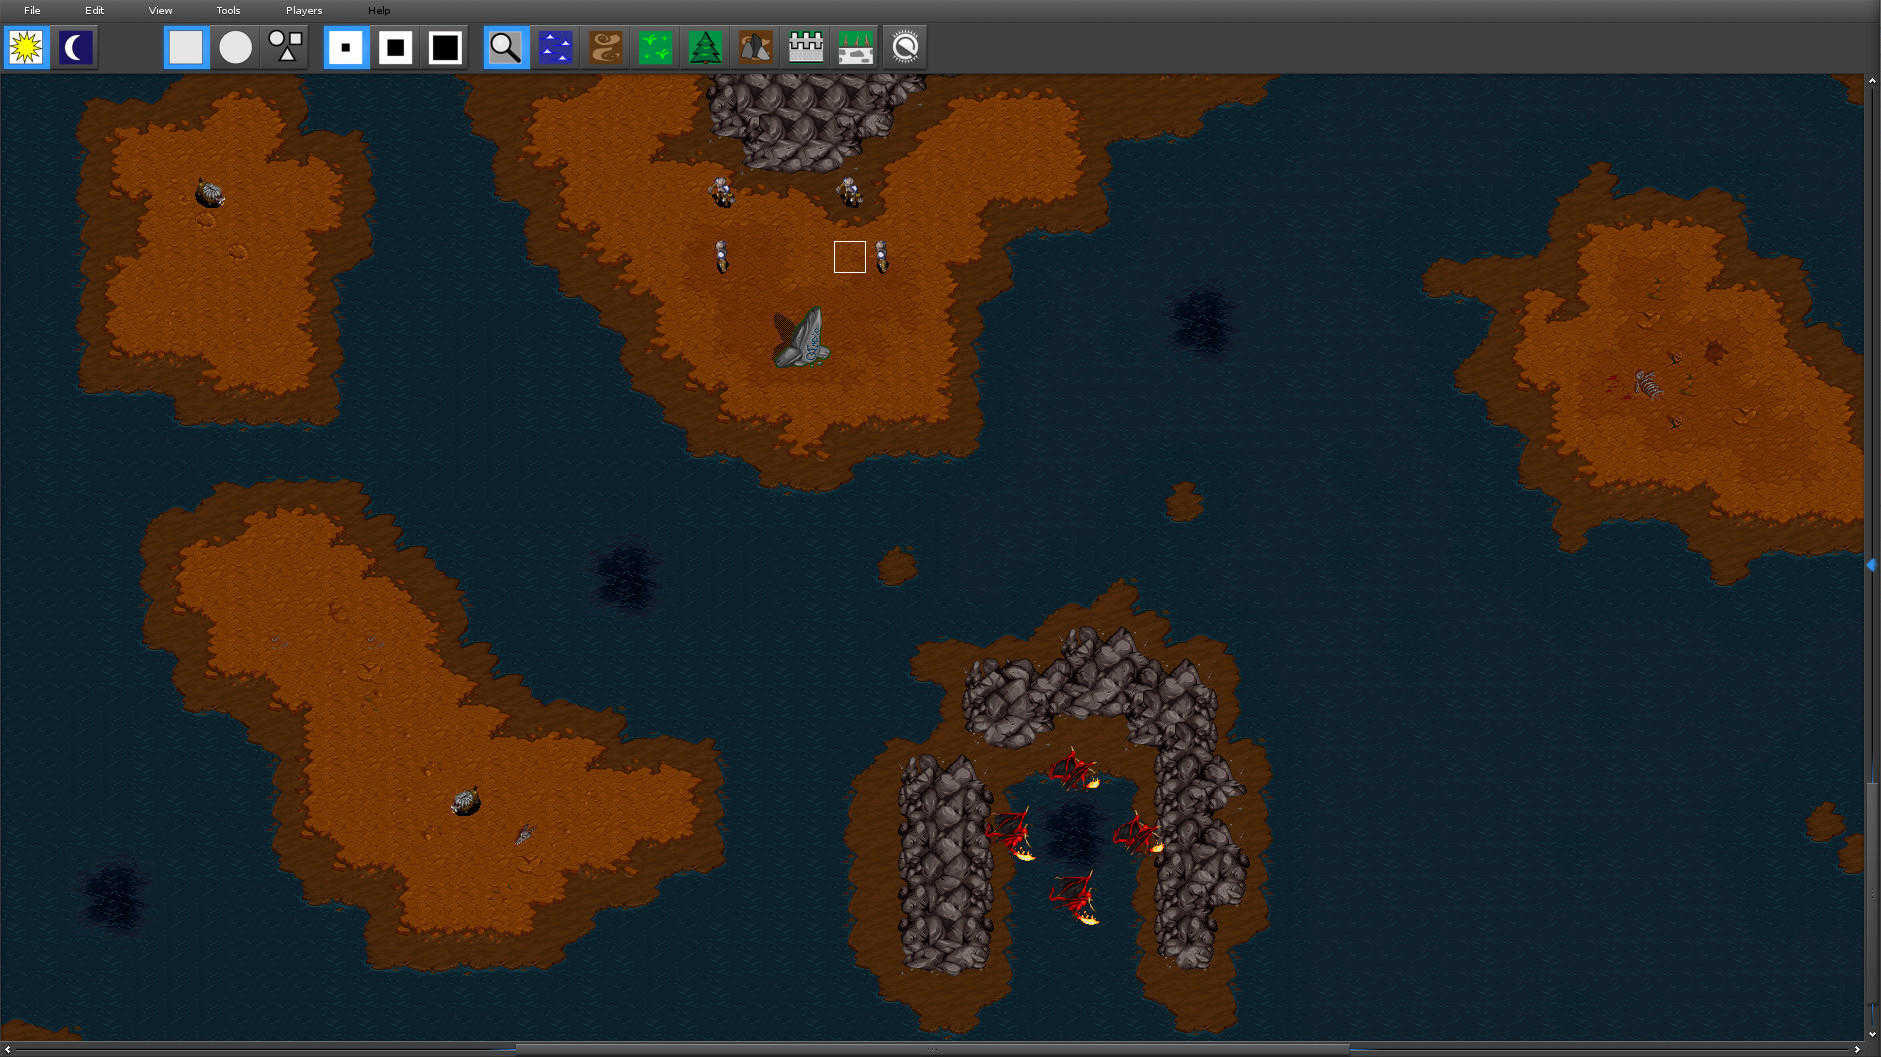 Unofficial warcraft ii world map editor image tandalosg gumiabroncs Gallery